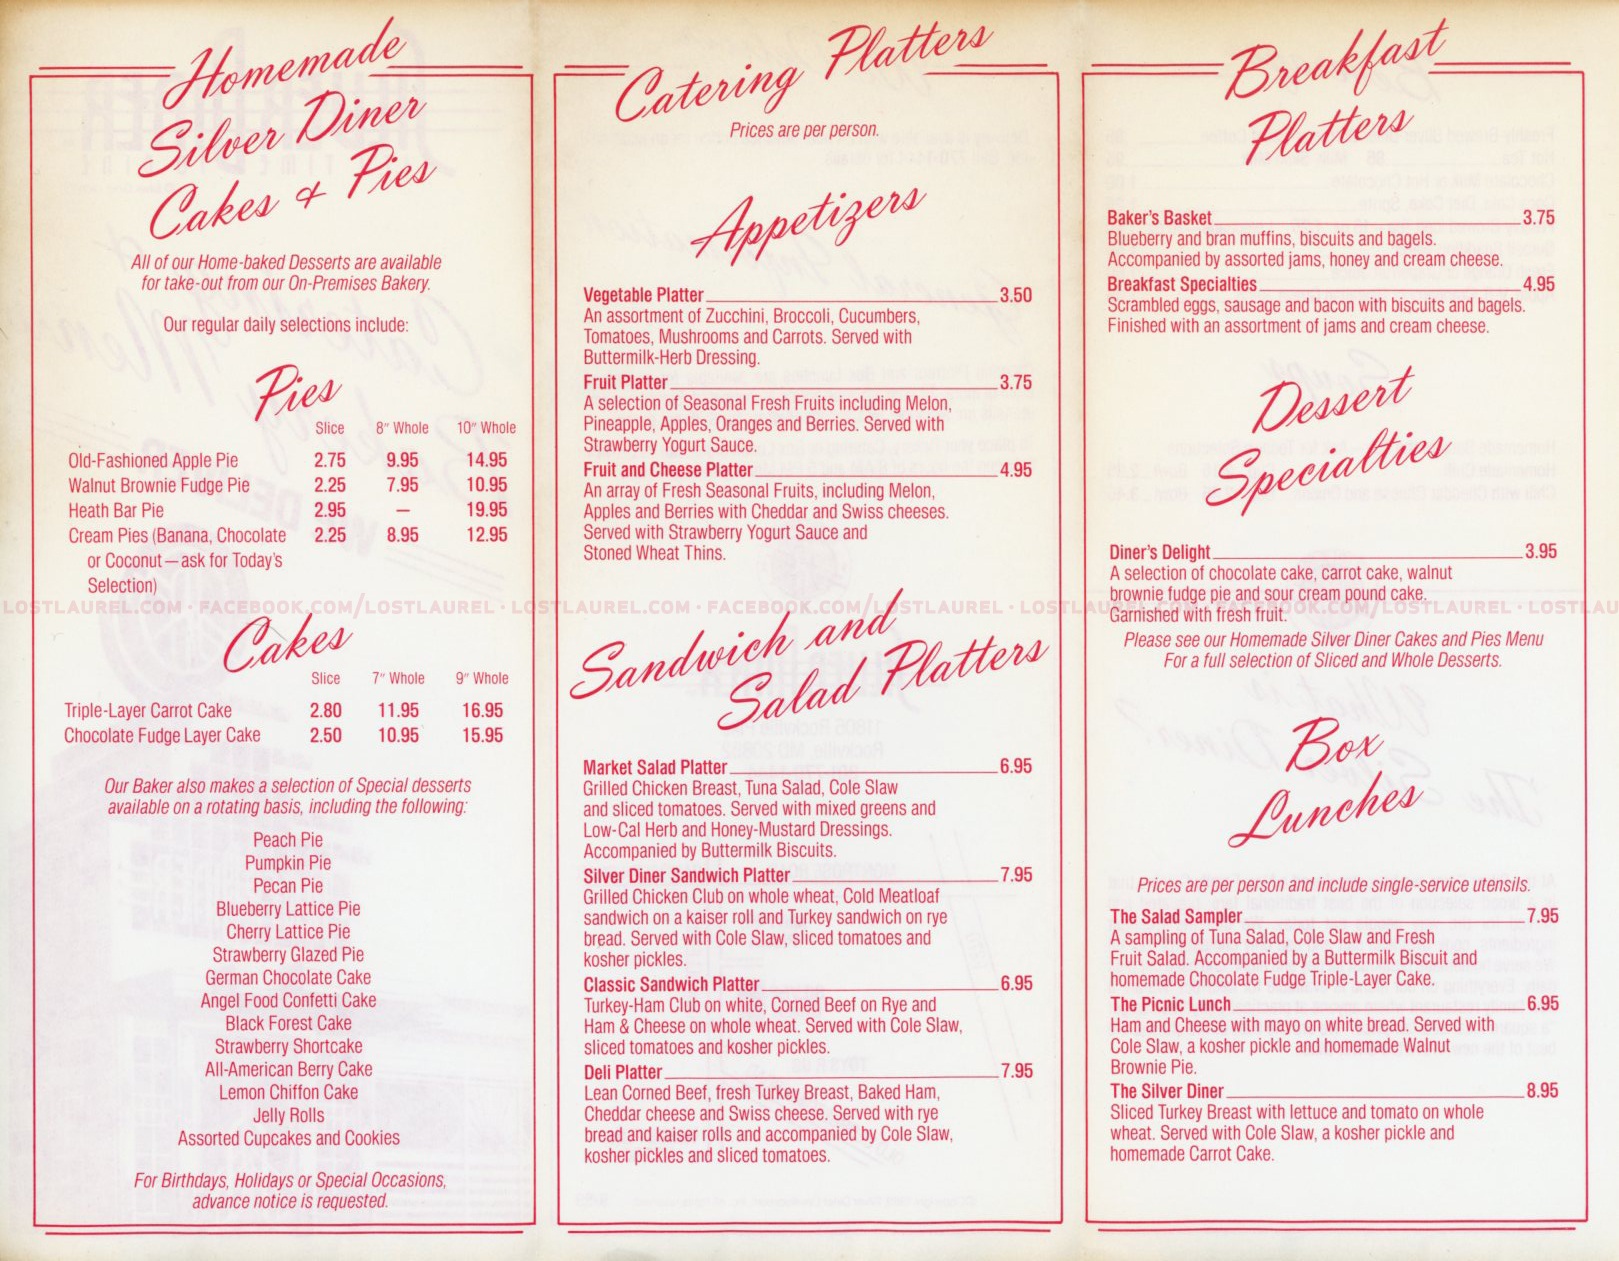 silver-diner-catering-menu-interior-1988